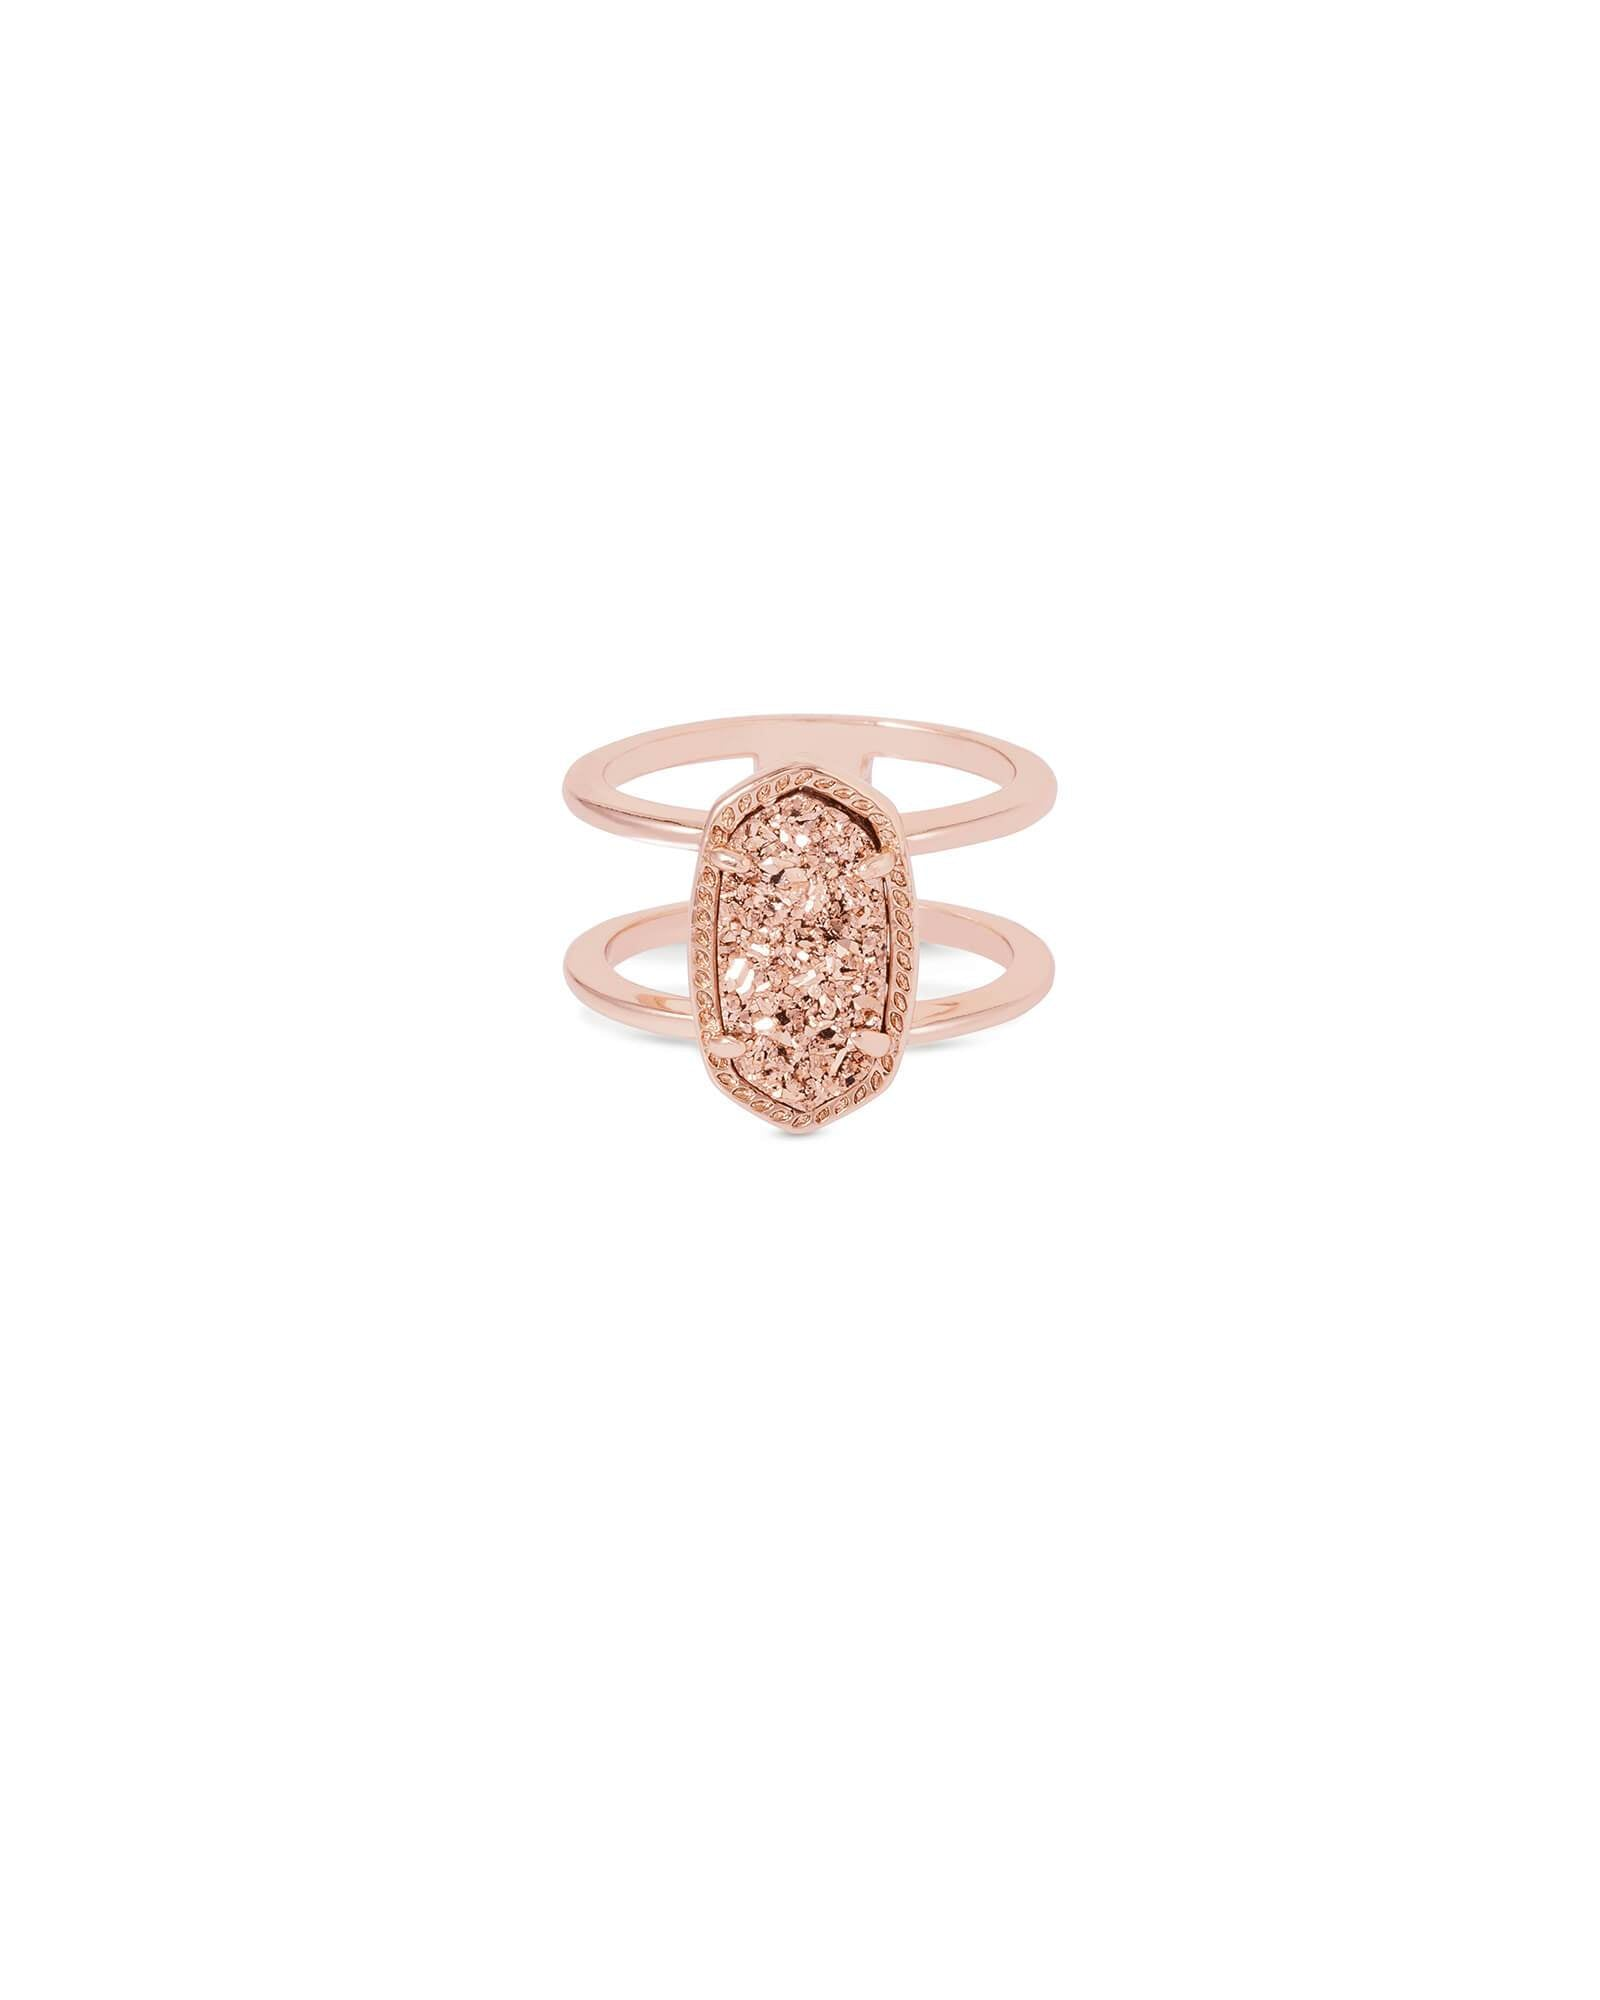 Elyse Size 8 Ring Rose Gold Drusy